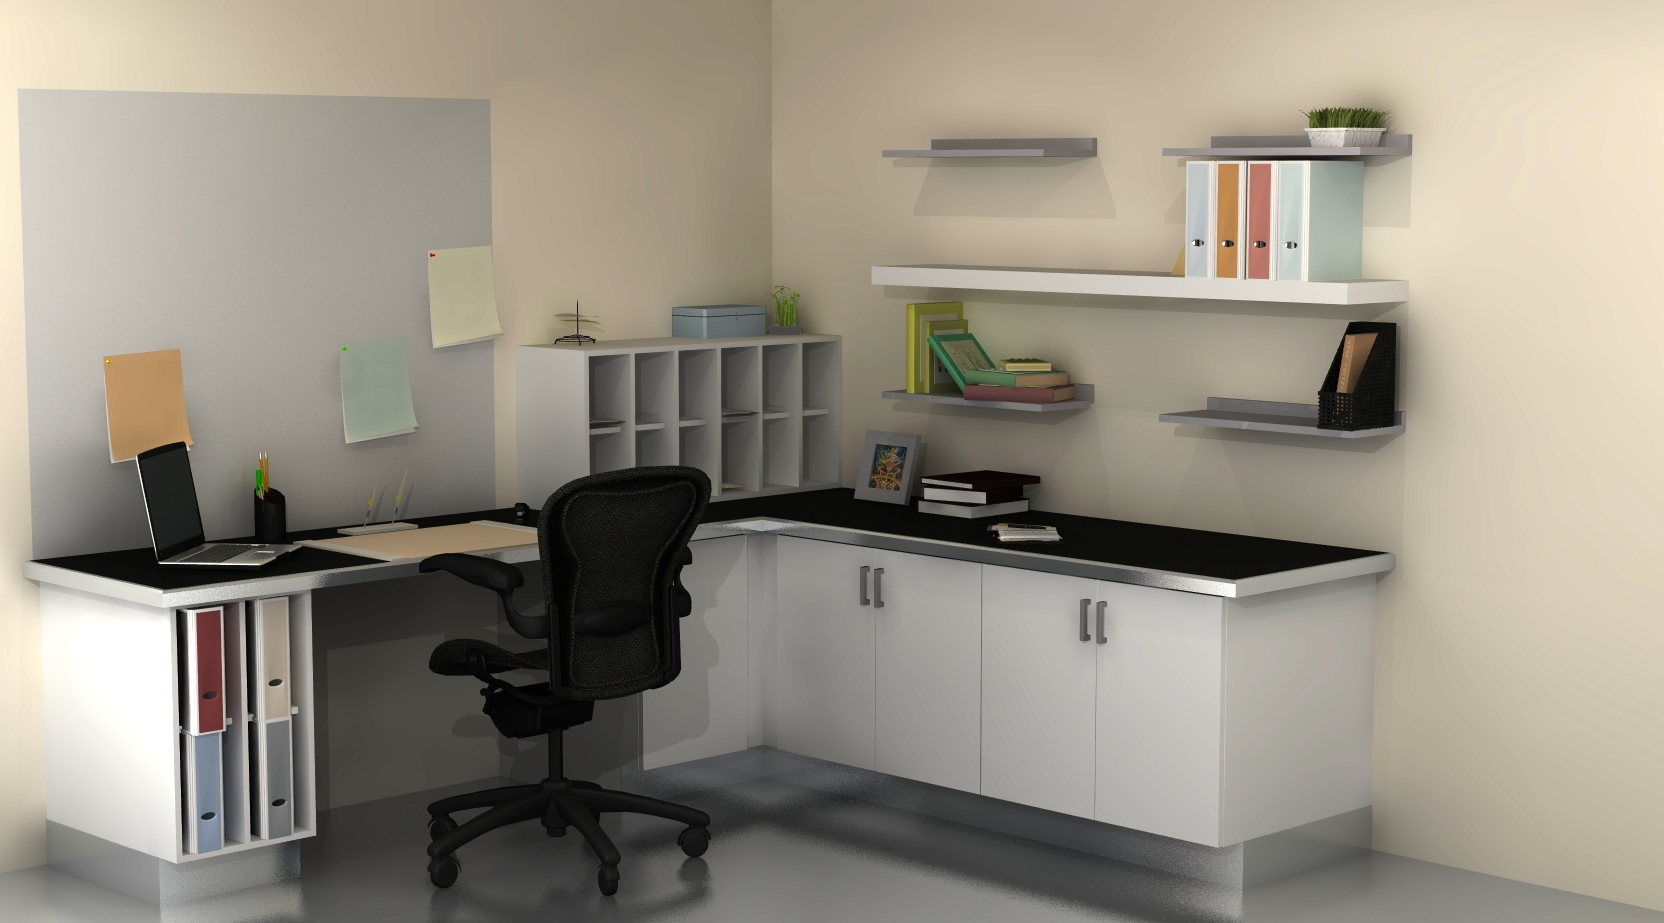 Useful spaces a home office with ikea cabinets for Home office design 10x10